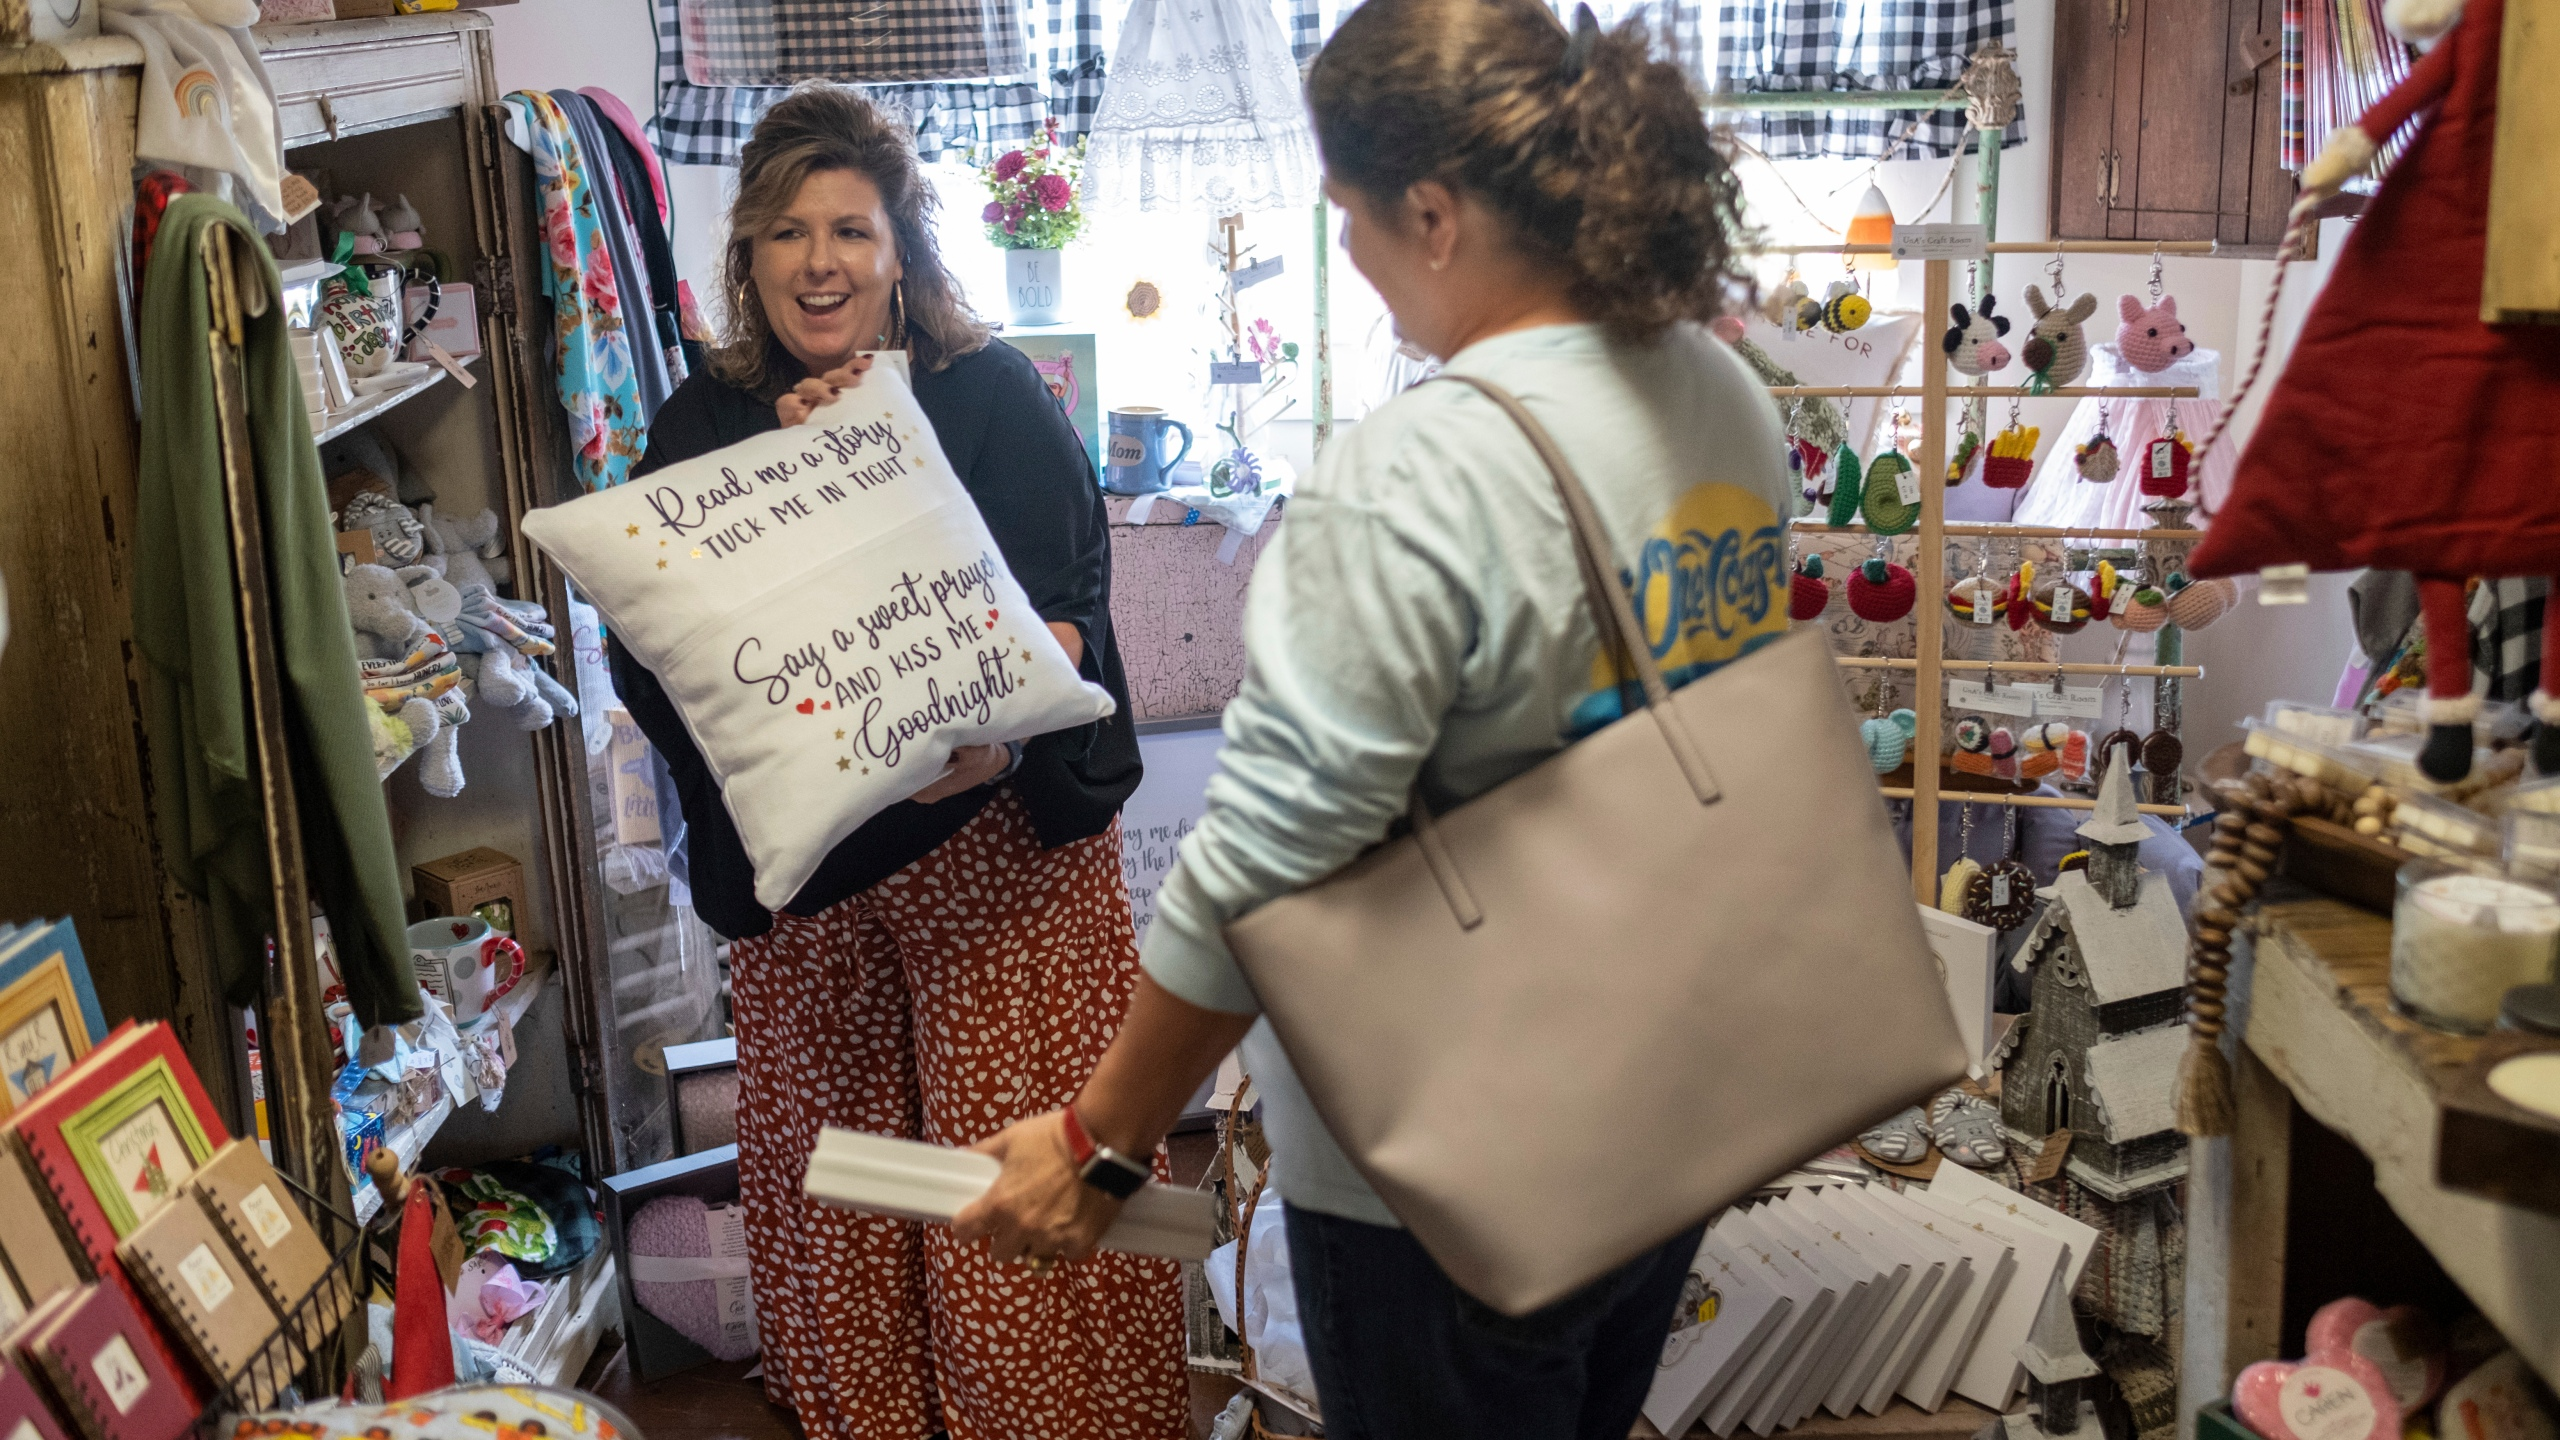 Ginger Pigg suggests a gift to a customer in her gift boutique The Perfect Pigg in Cumming, Ga. on Thursday afternoon, Oct. 22, 2021. She says she is struggling to get products to her store in a timely way. (AP Photo/Ben Gray)